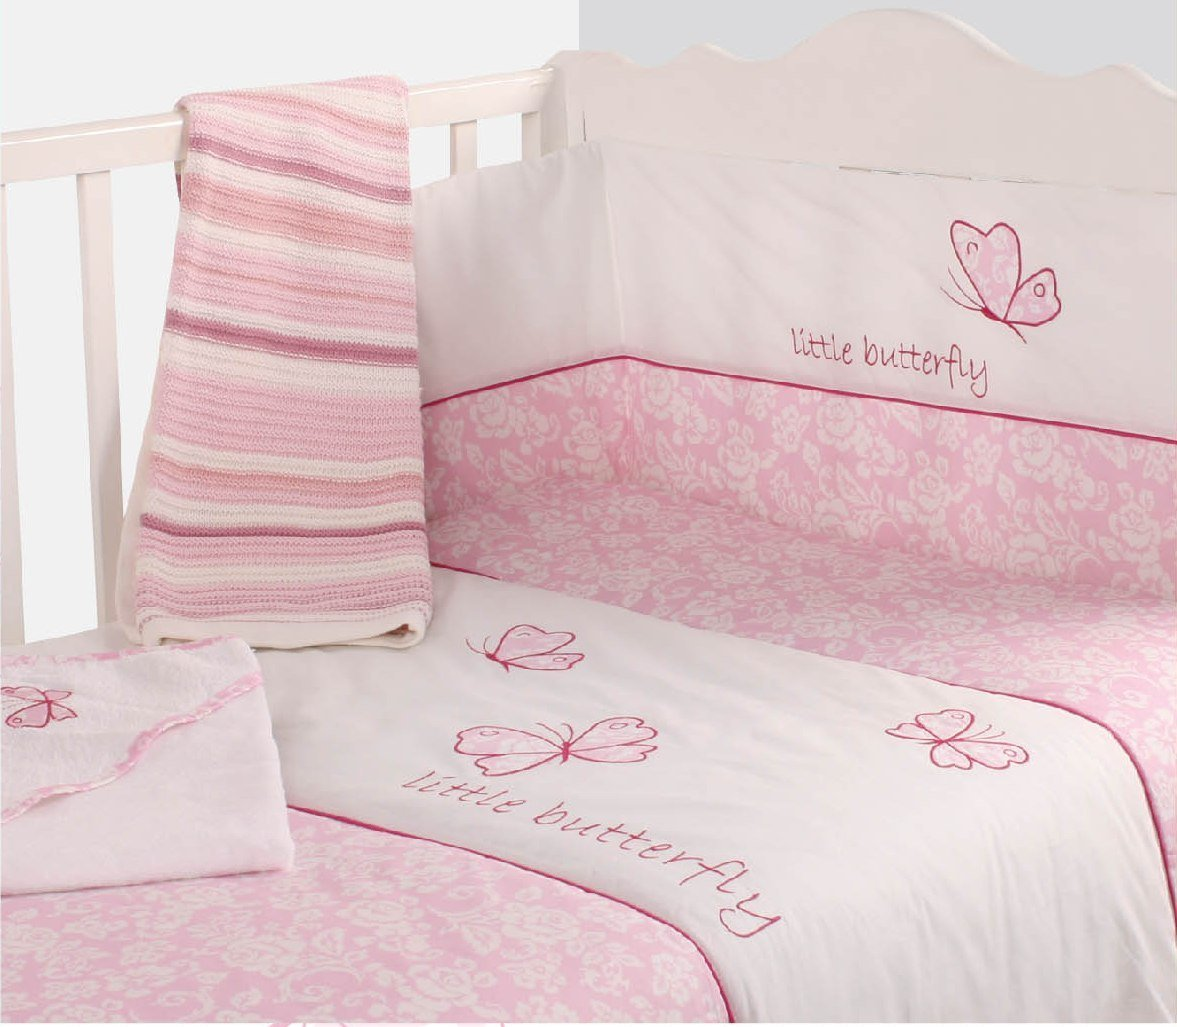 Cot Bedding Sets And Beds Advantages Goodworksfurniture